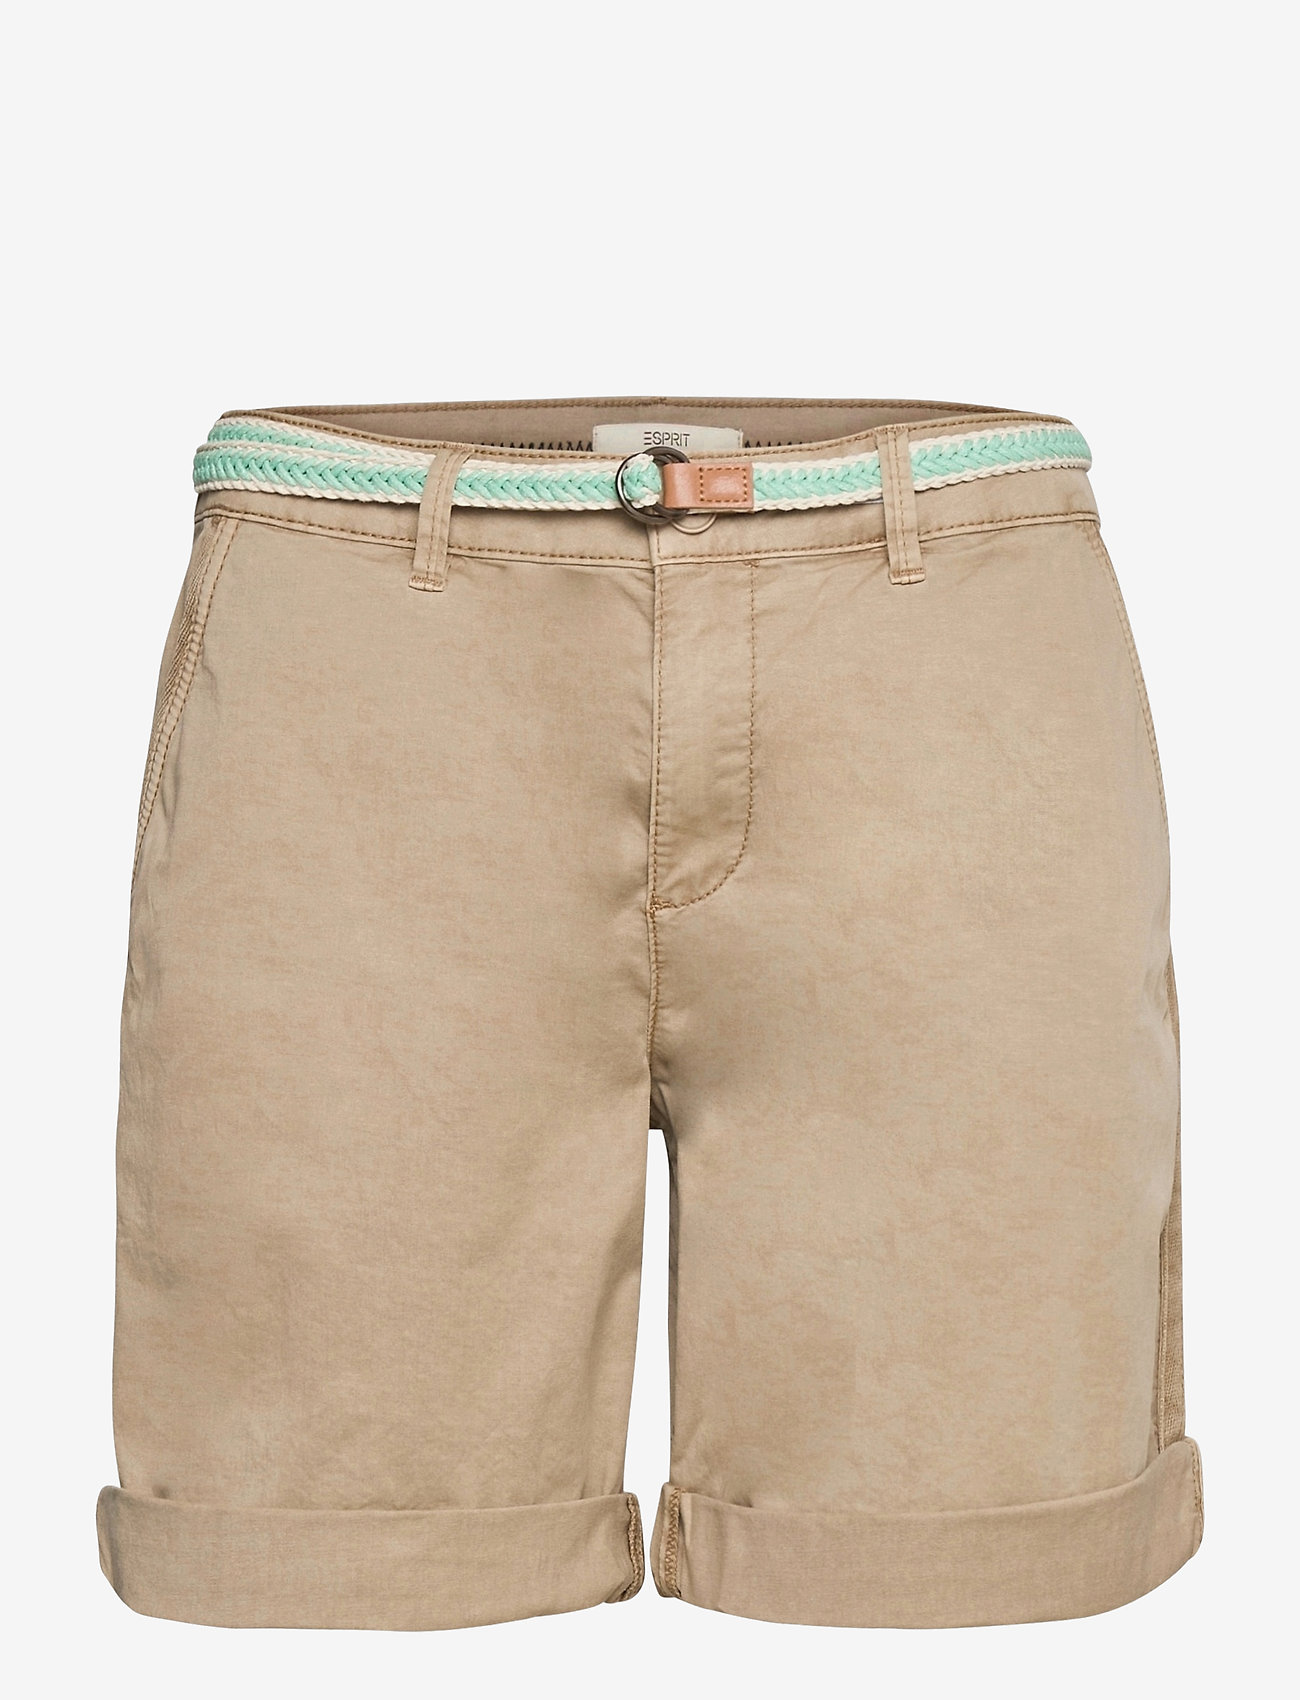 Esprit Casual - Shorts woven - chino shorts - beige - 0